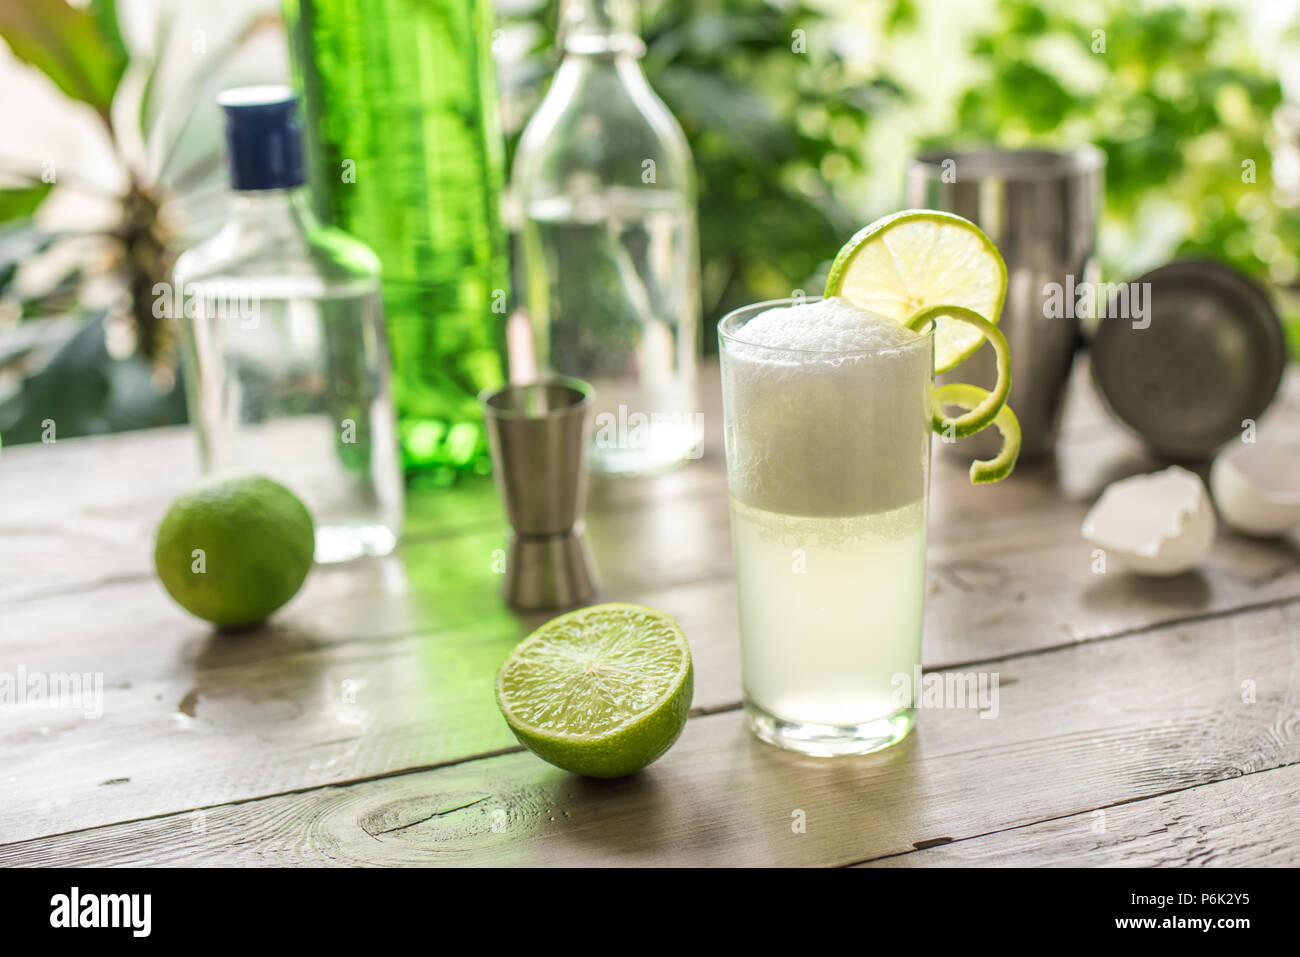 Egg Gin Fizz Cocktail with Lime Garnish. Making Gin Fizz Drink with ingredients. - Stock Image